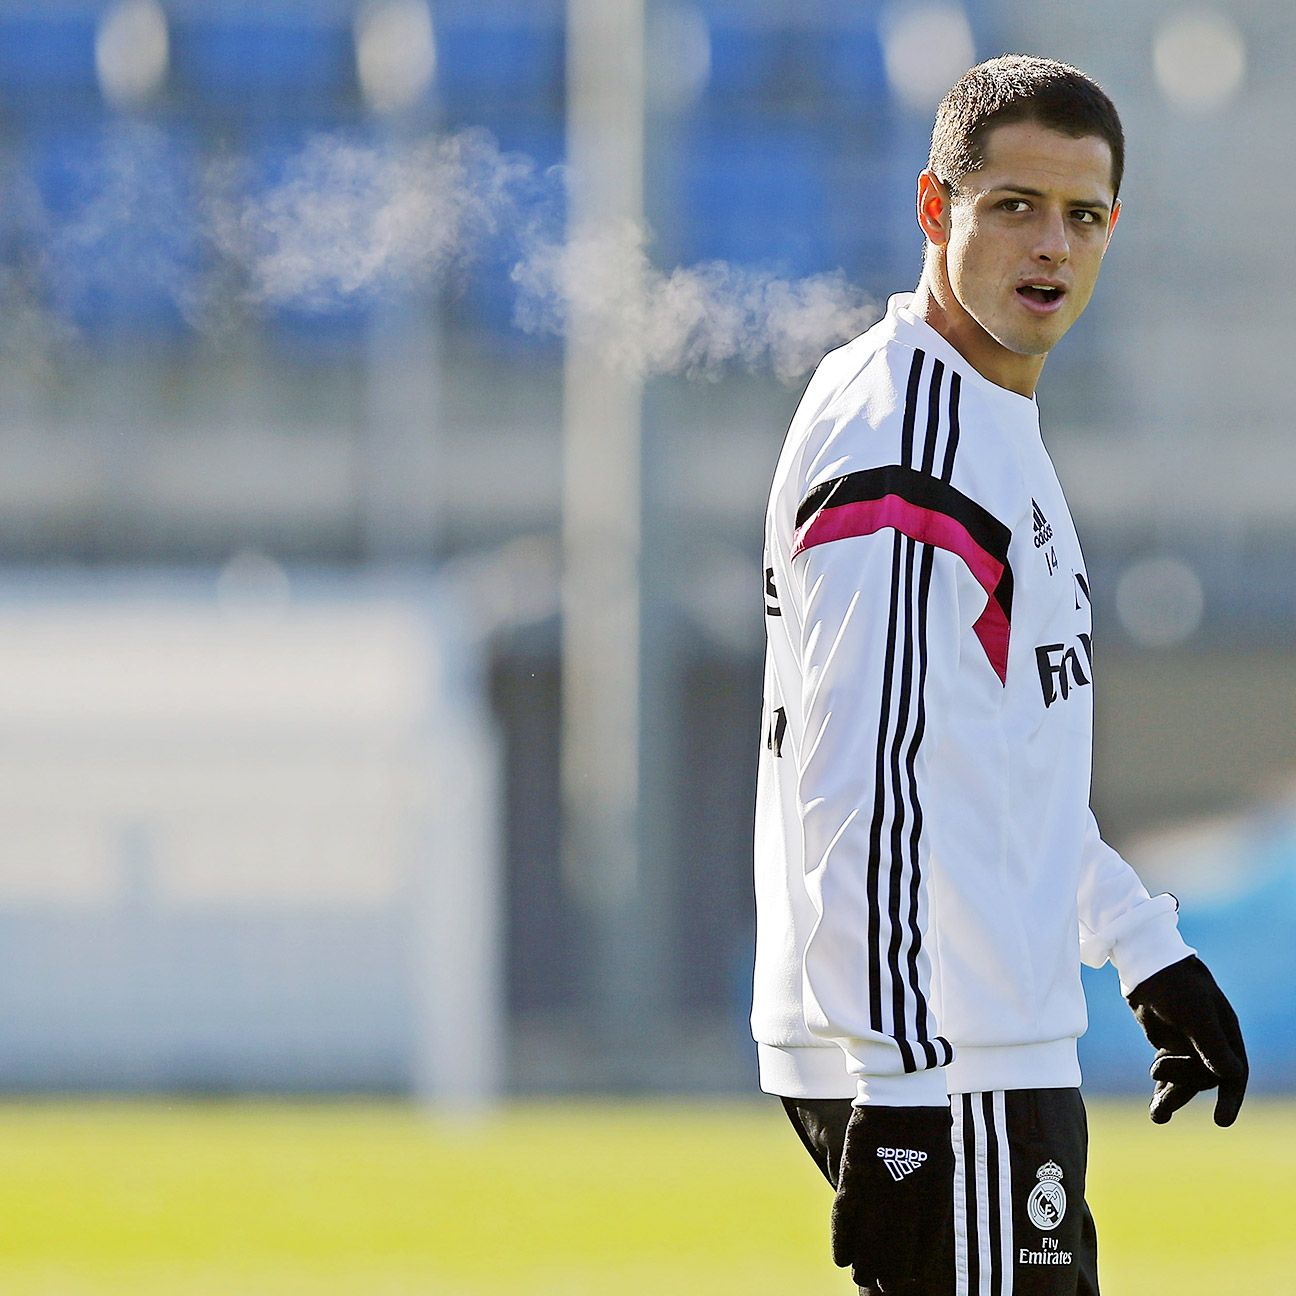 Chicharito Hernandez has made just one appearance for Real Madrid since the new year.